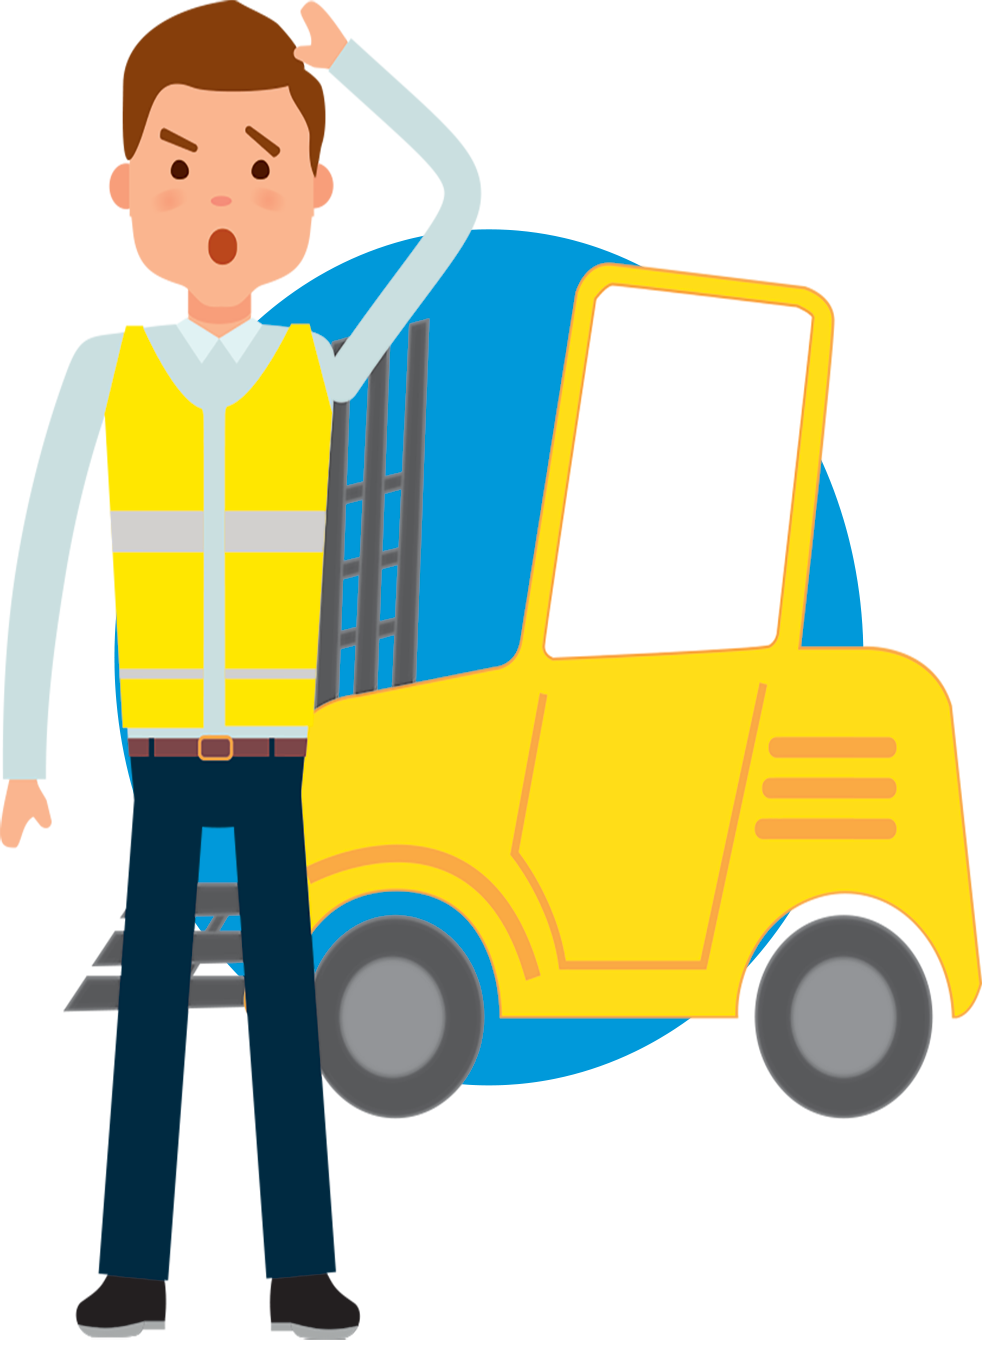 Warehouse worker clipart picture royalty free Forklift clipart warehouse worker, Forklift warehouse worker ... picture royalty free